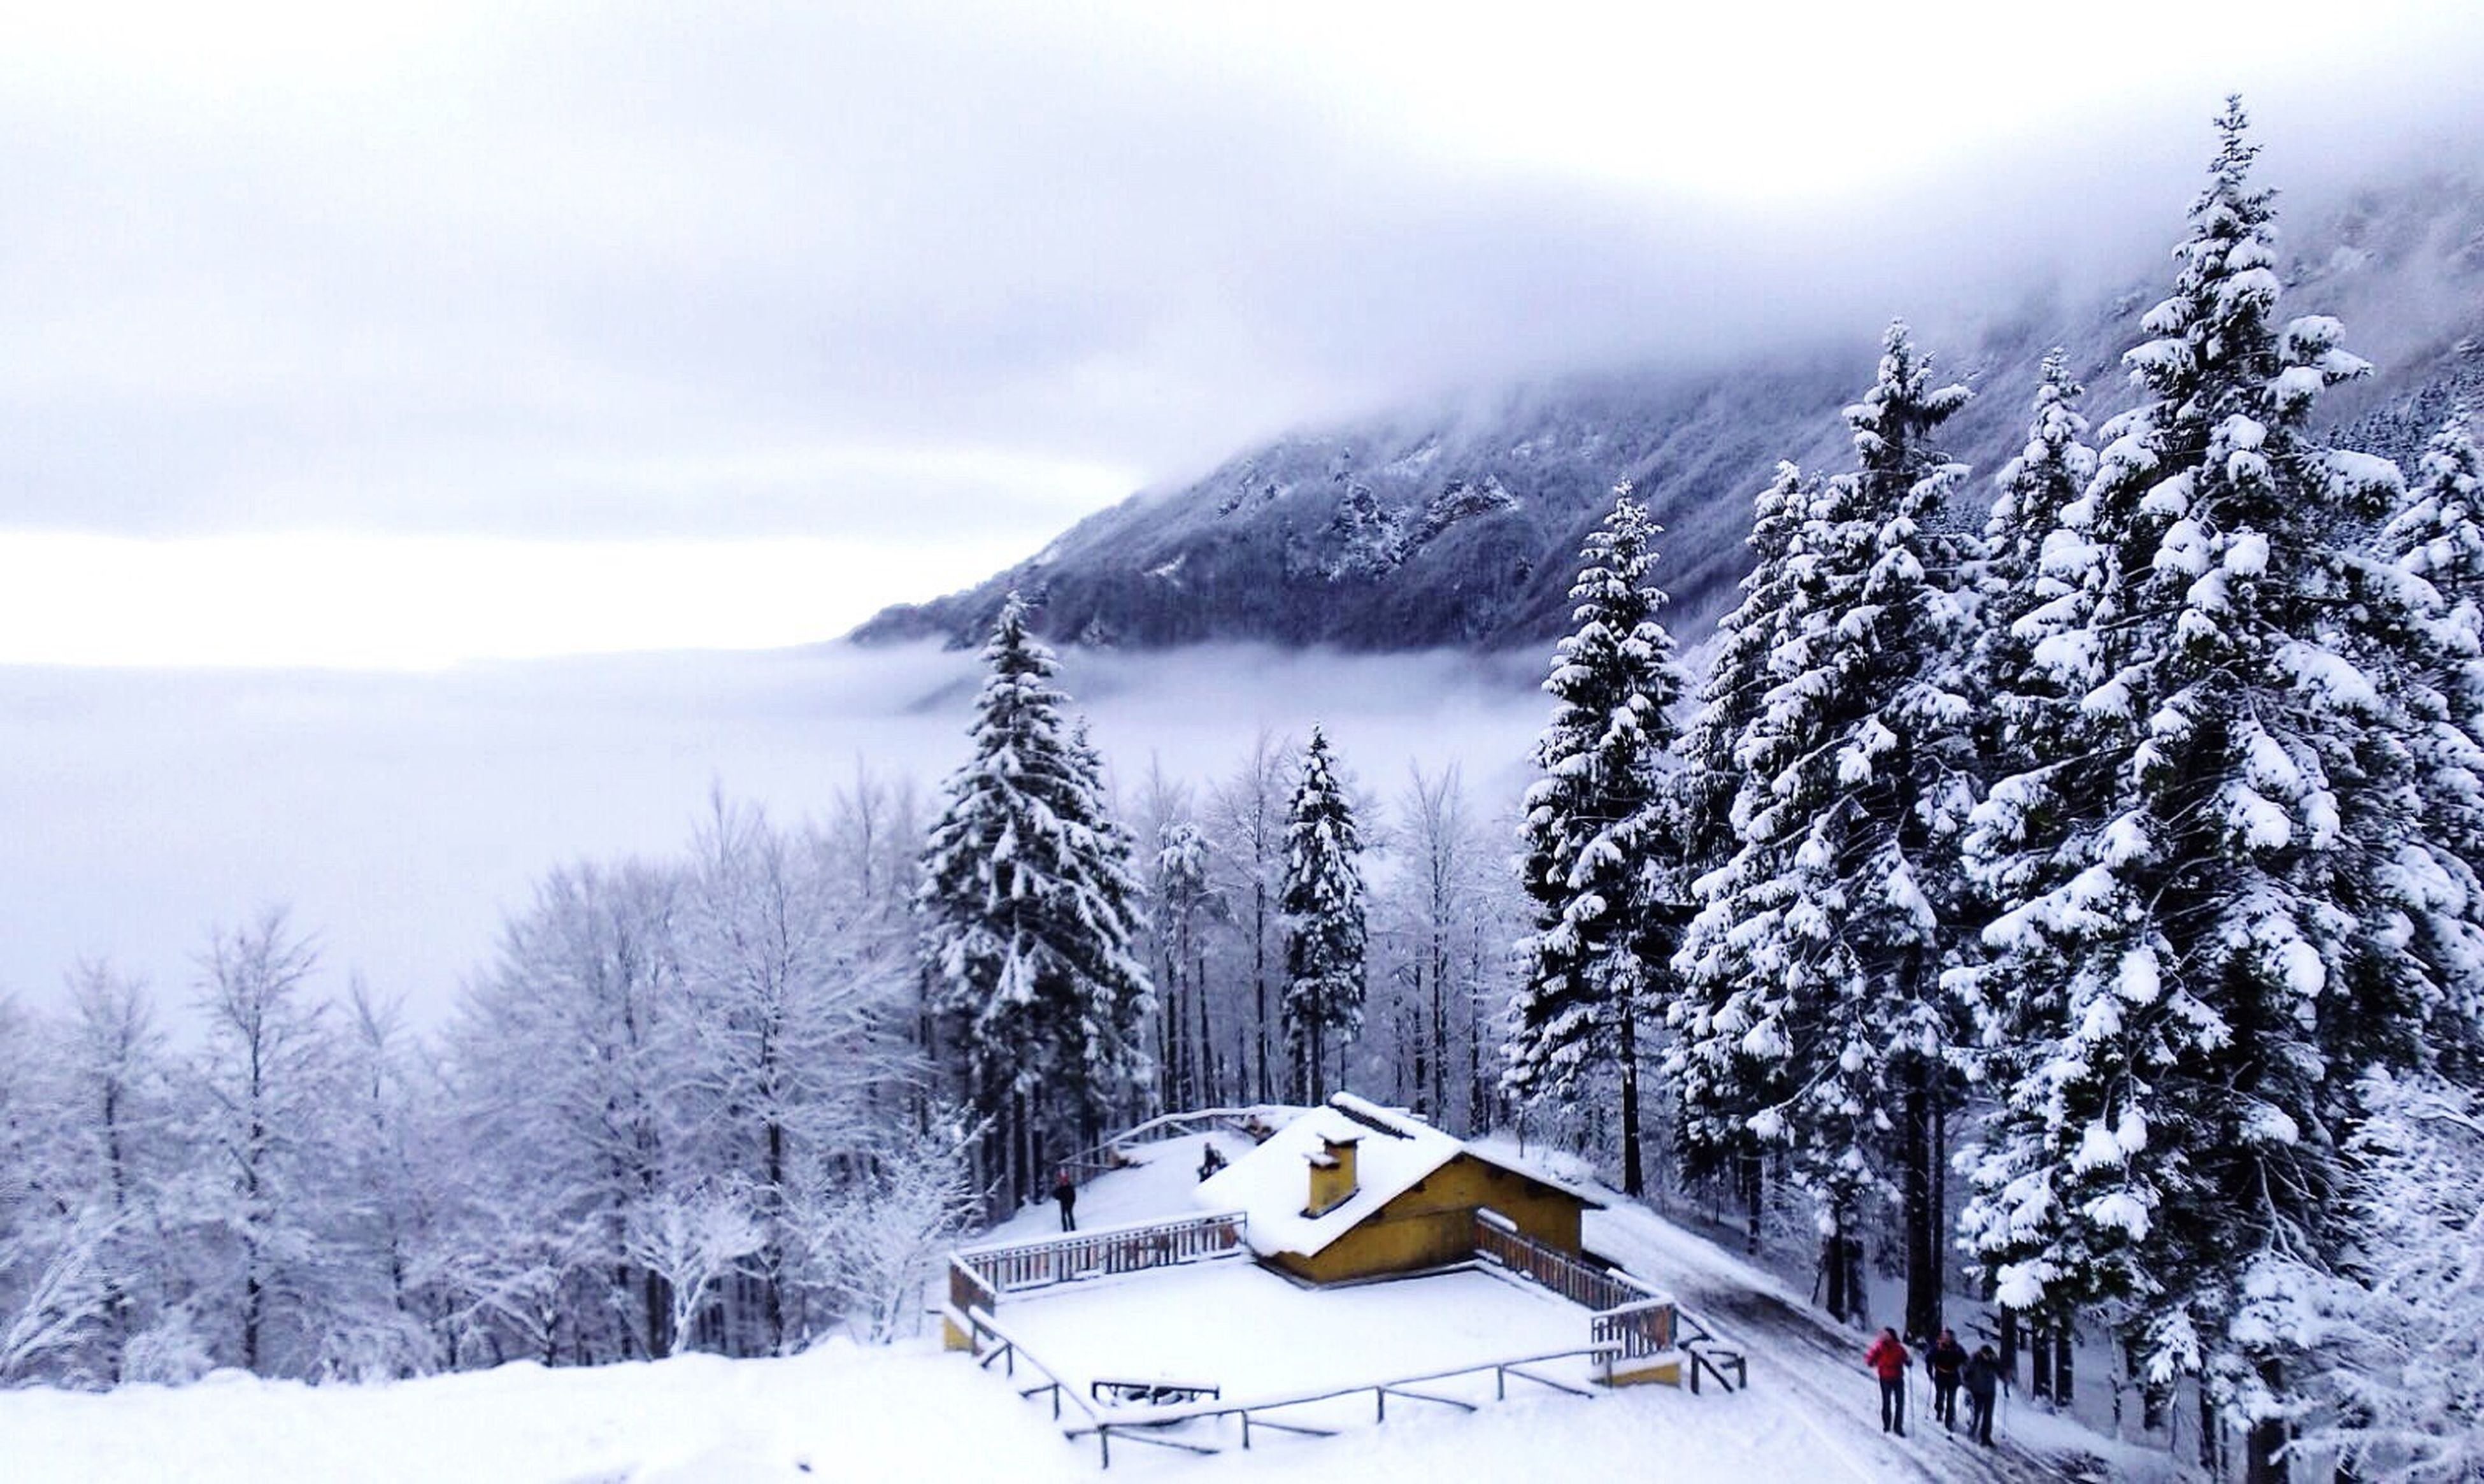 snow, winter, cold temperature, season, weather, covering, tranquil scene, landscape, snowcapped mountain, tranquility, scenics, beauty in nature, mountain, white color, tree, nature, sky, covered, frozen, snow covered